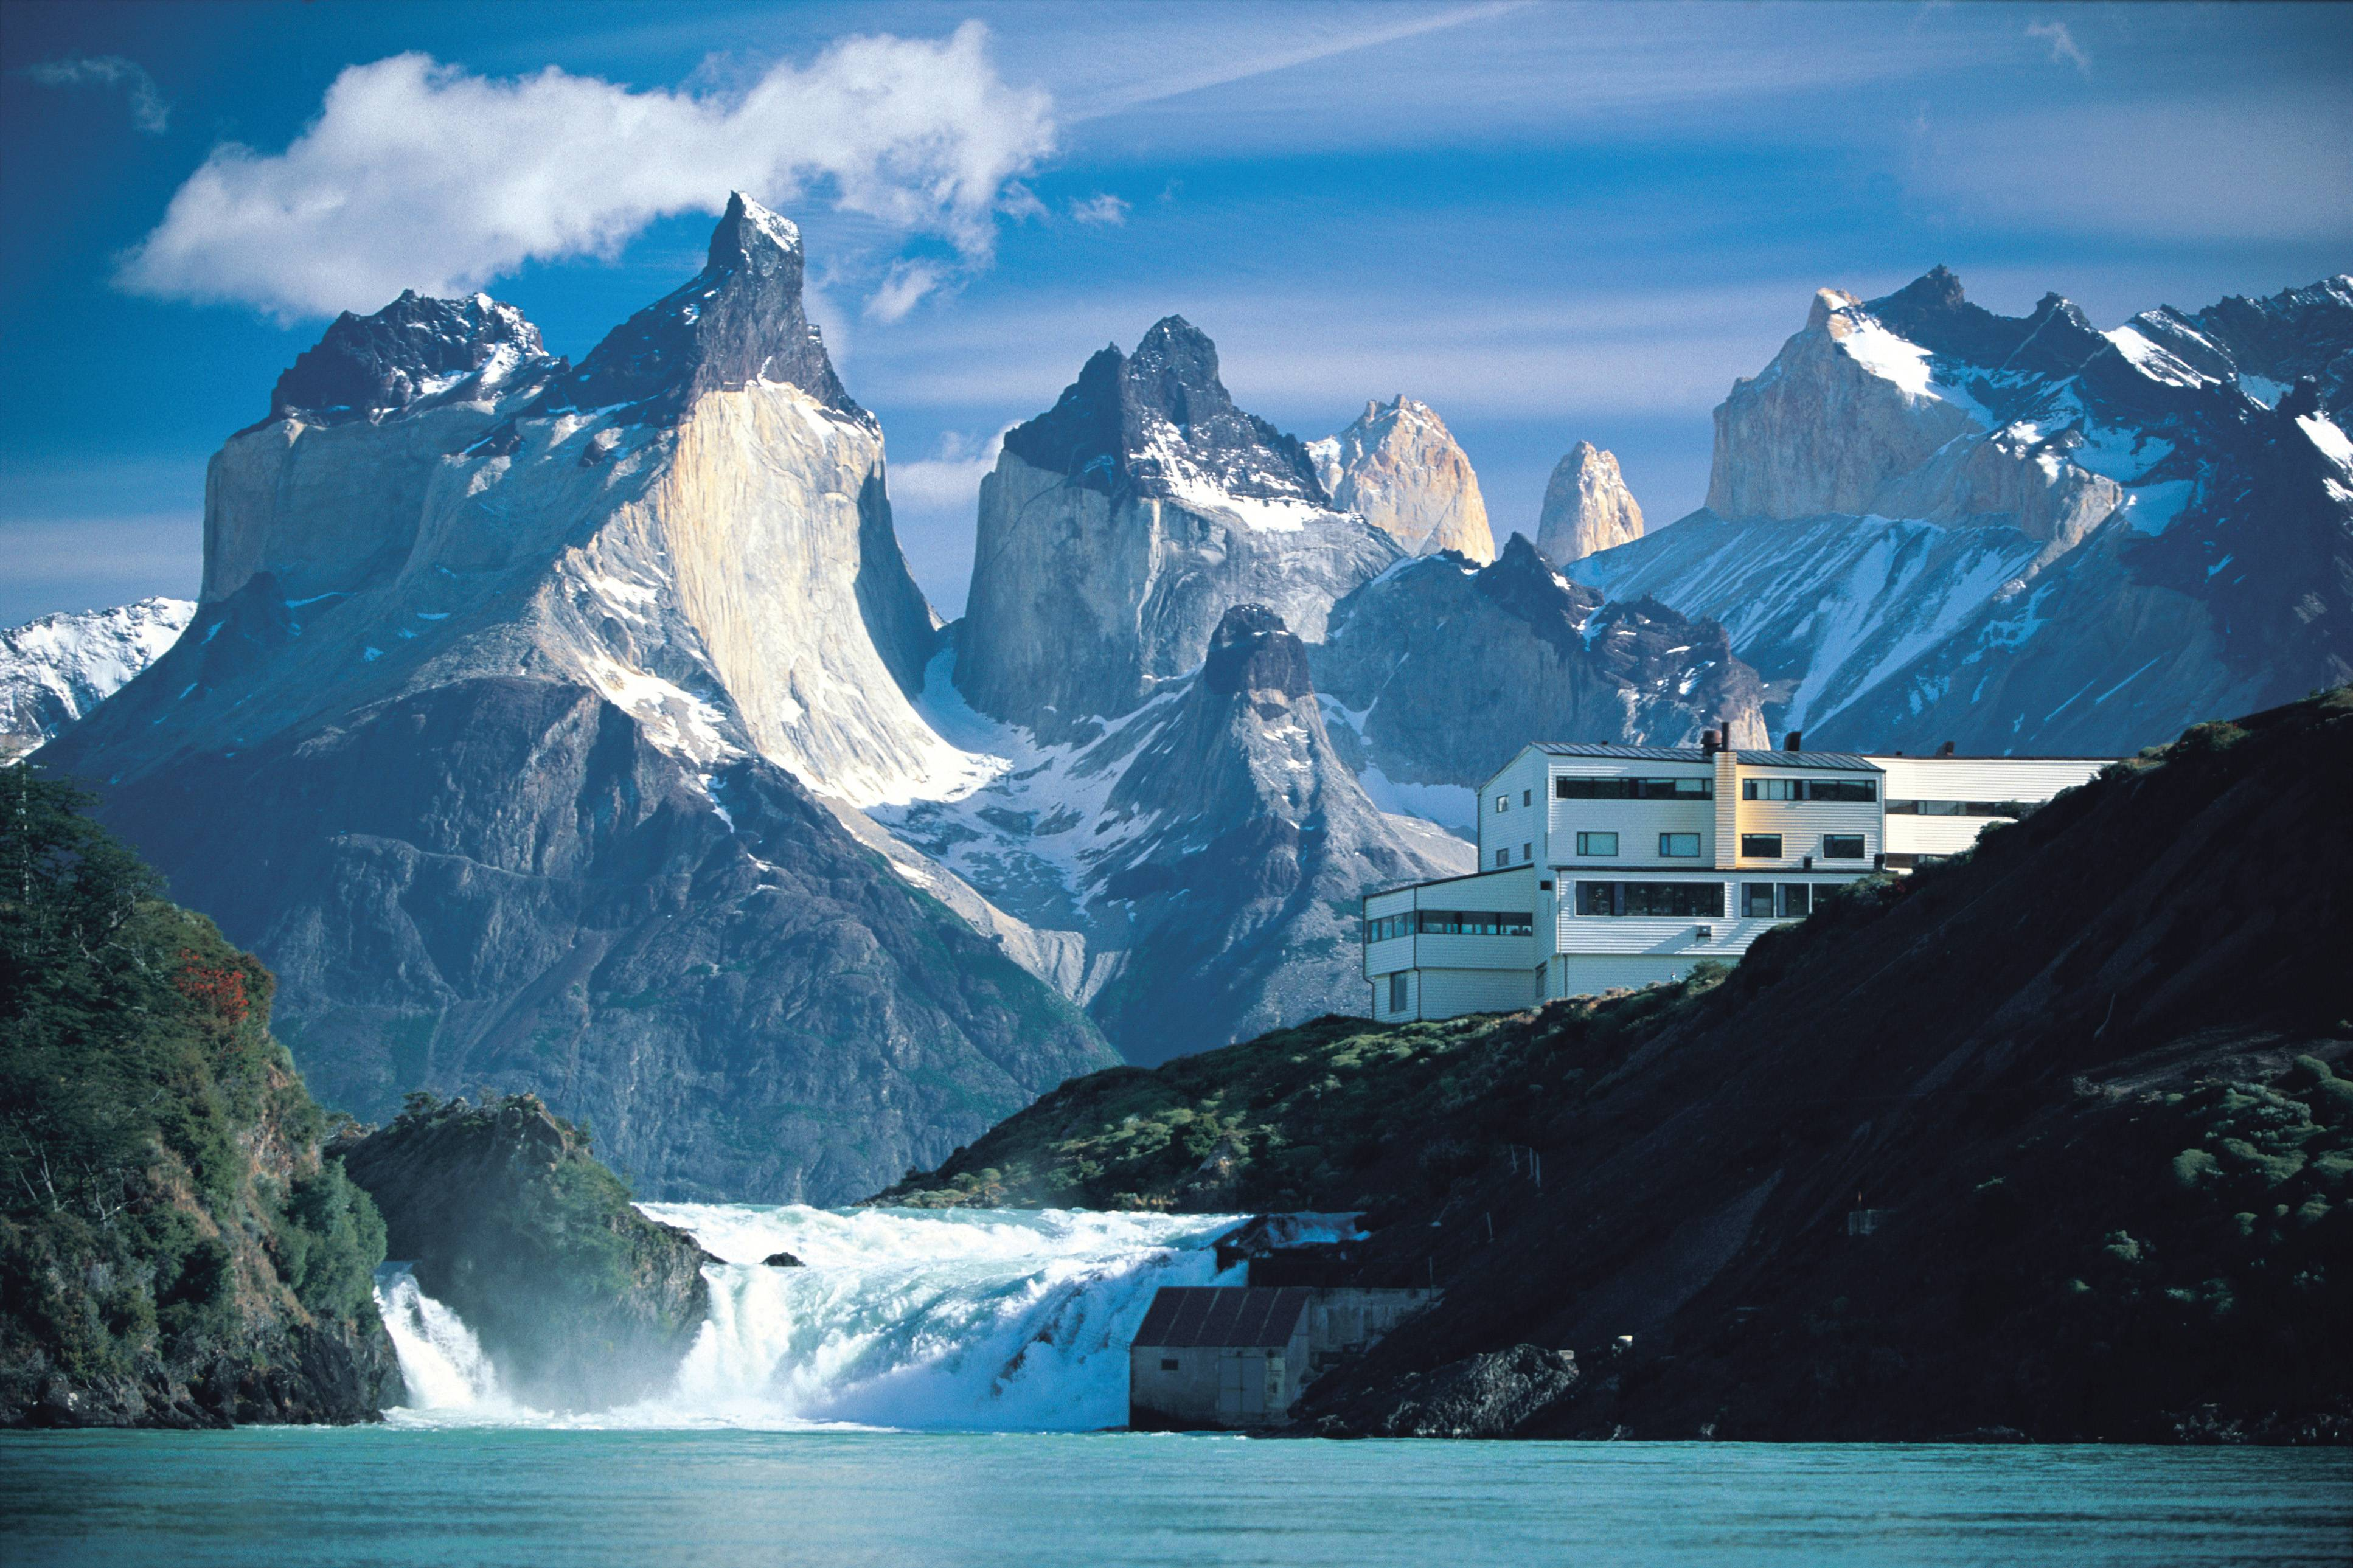 Welcome to the Hotel Patagonia.